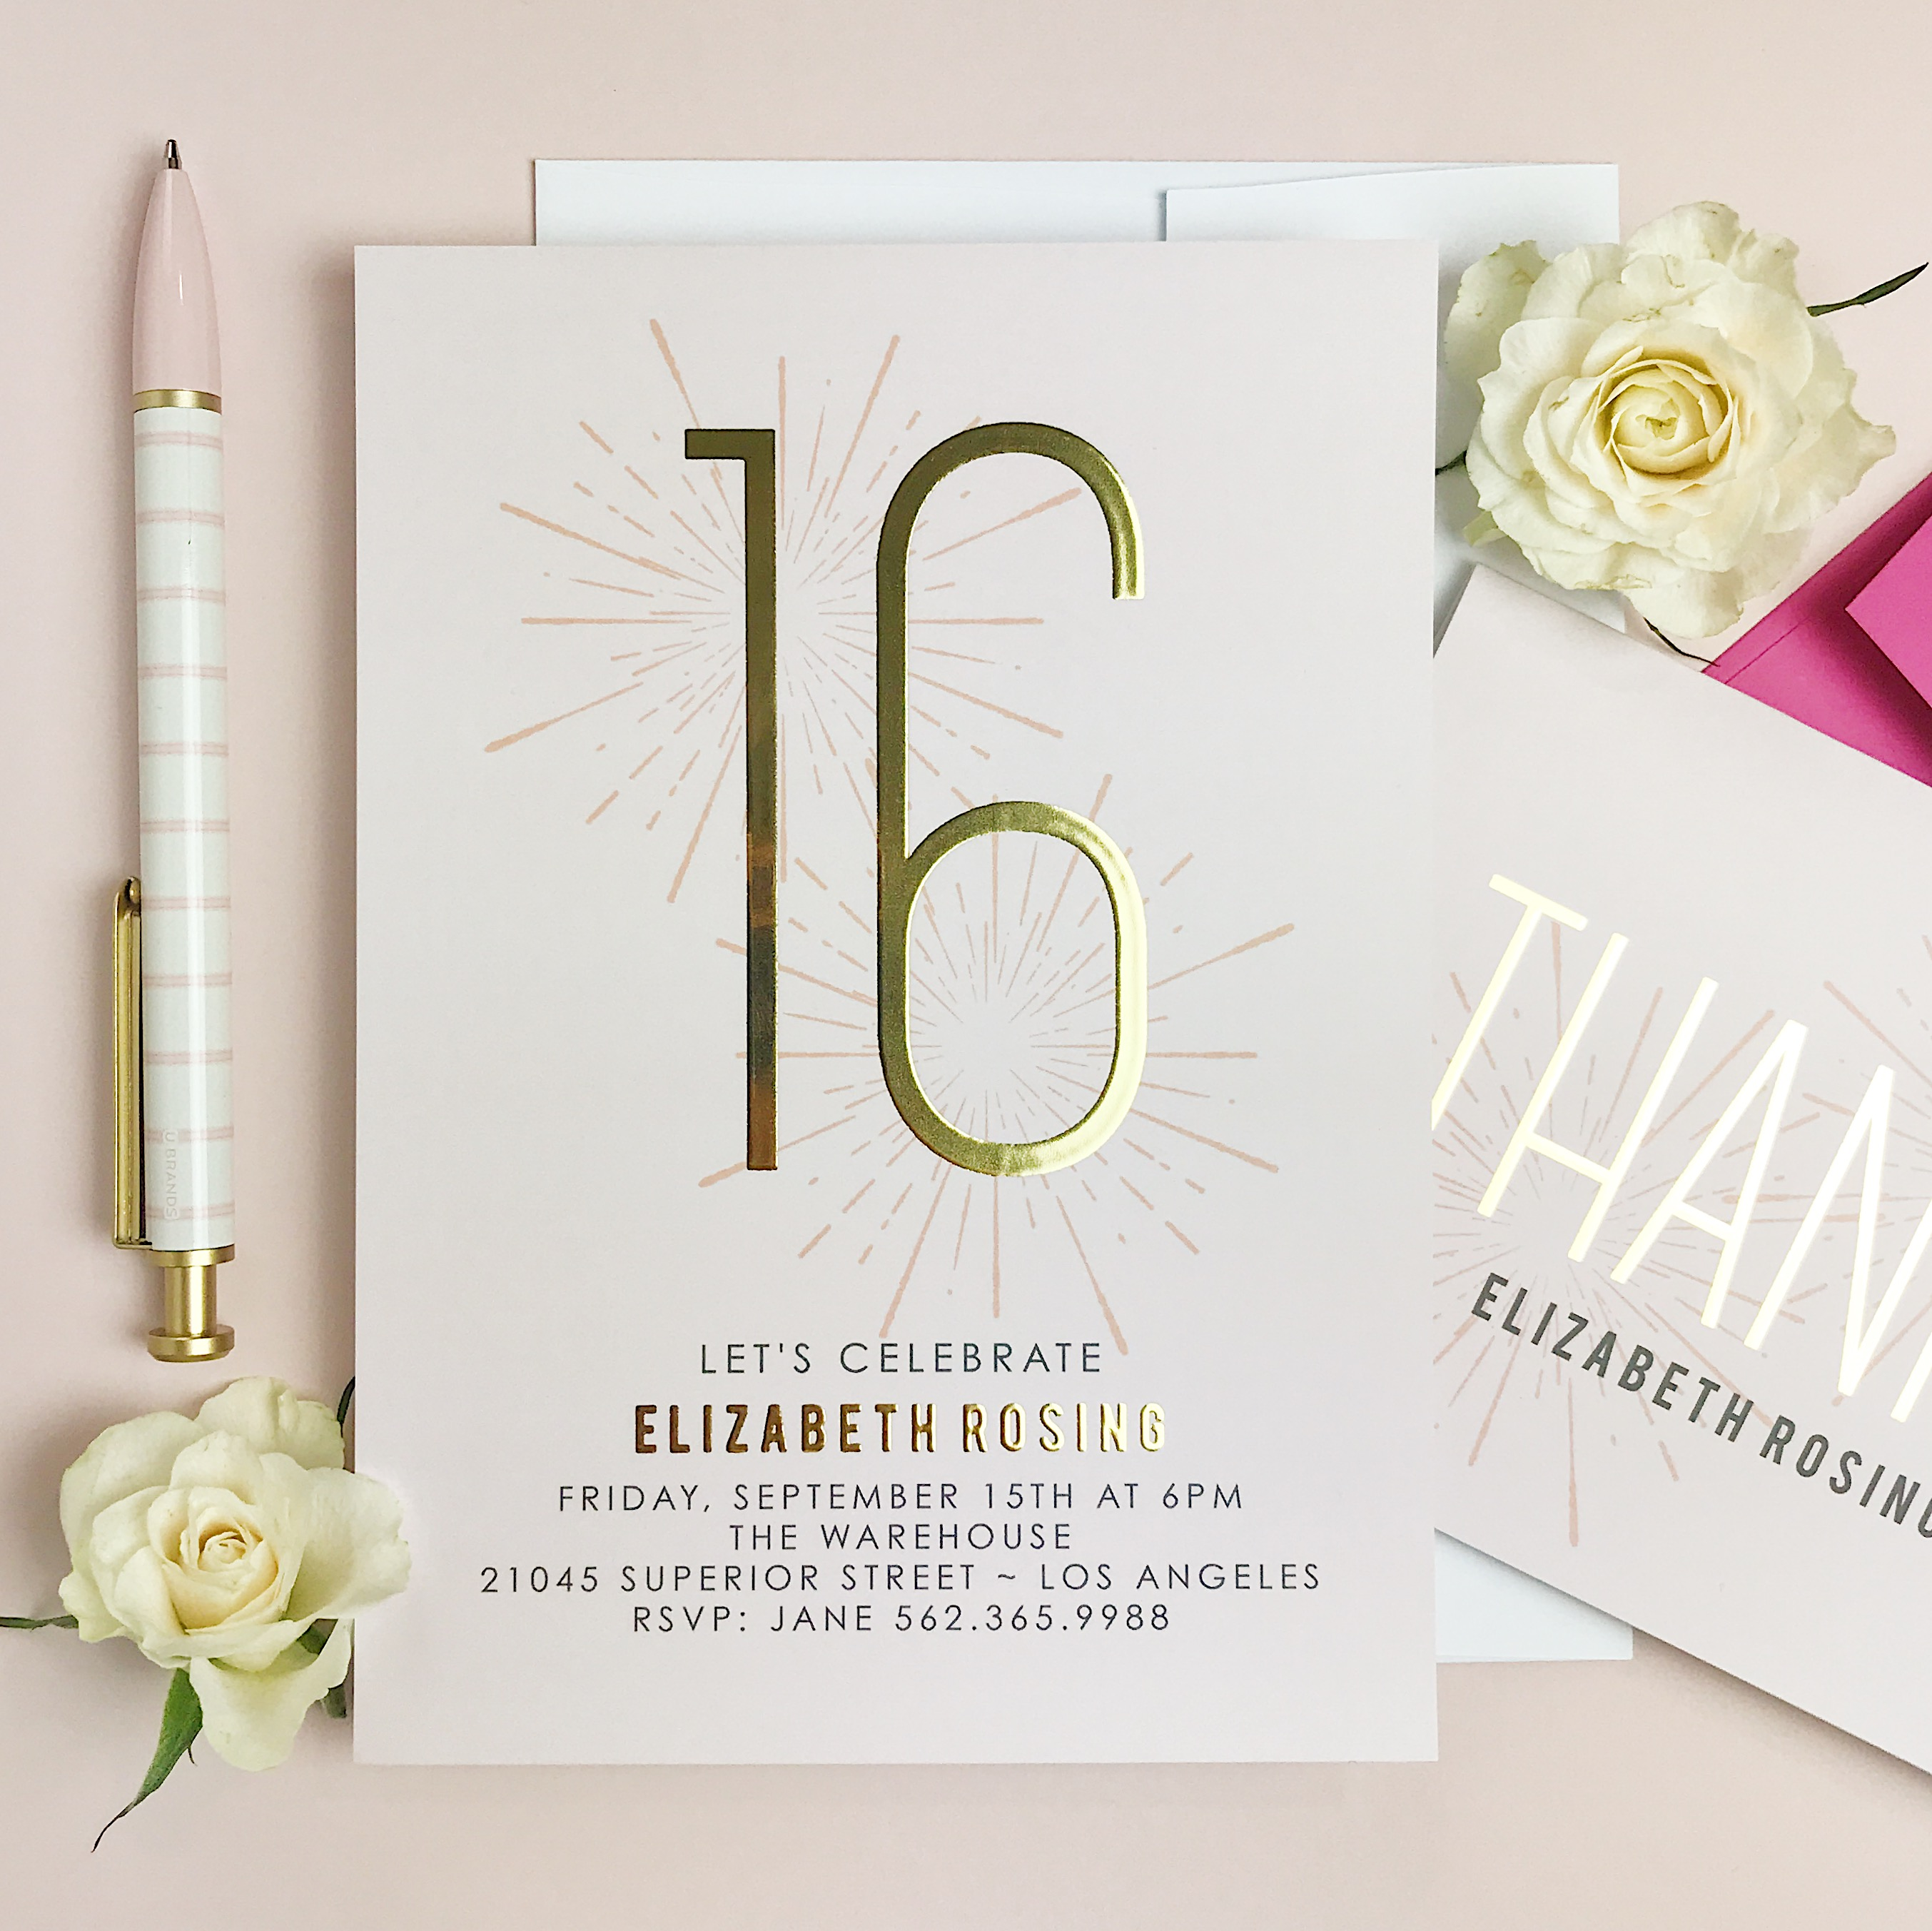 Basic Invite: Custom Invitations for Life\'s Special Occasions